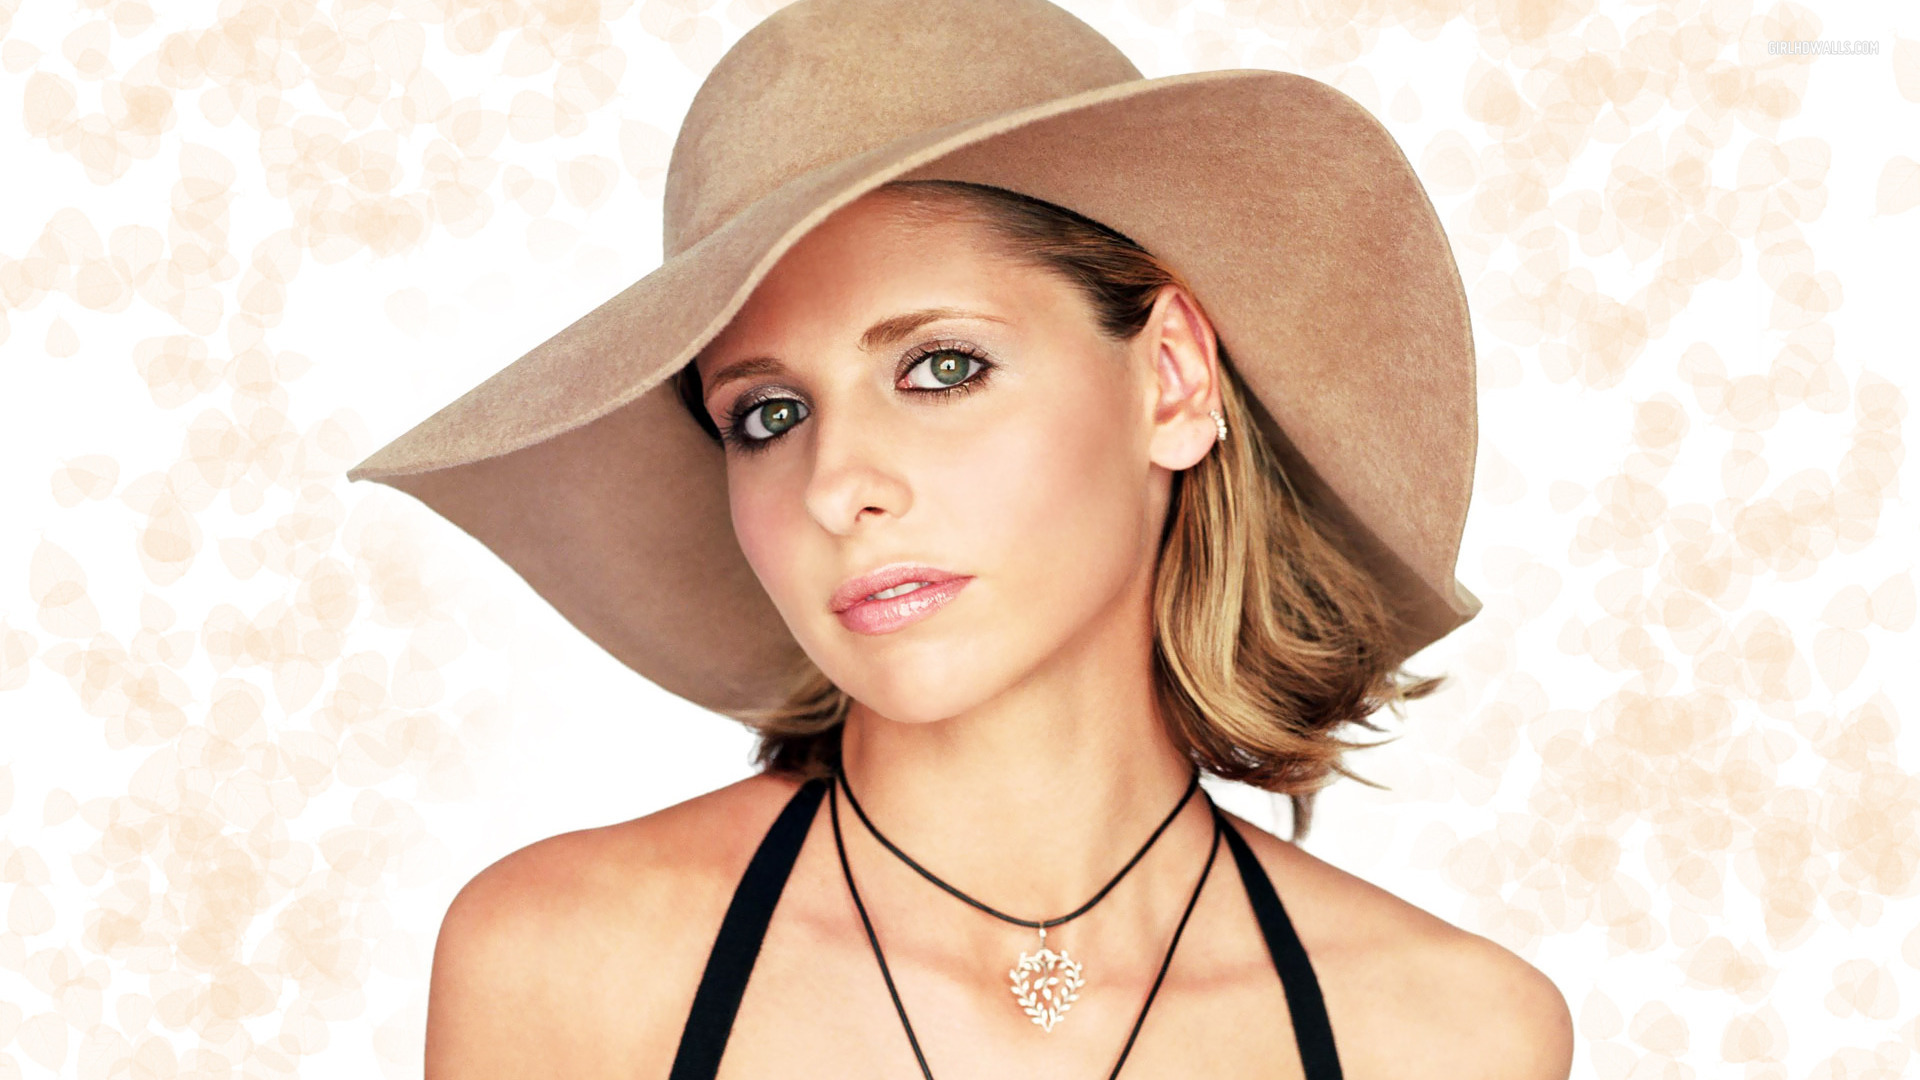 Sarah Michelle Gellar Wallpapers High Quality | Download Free